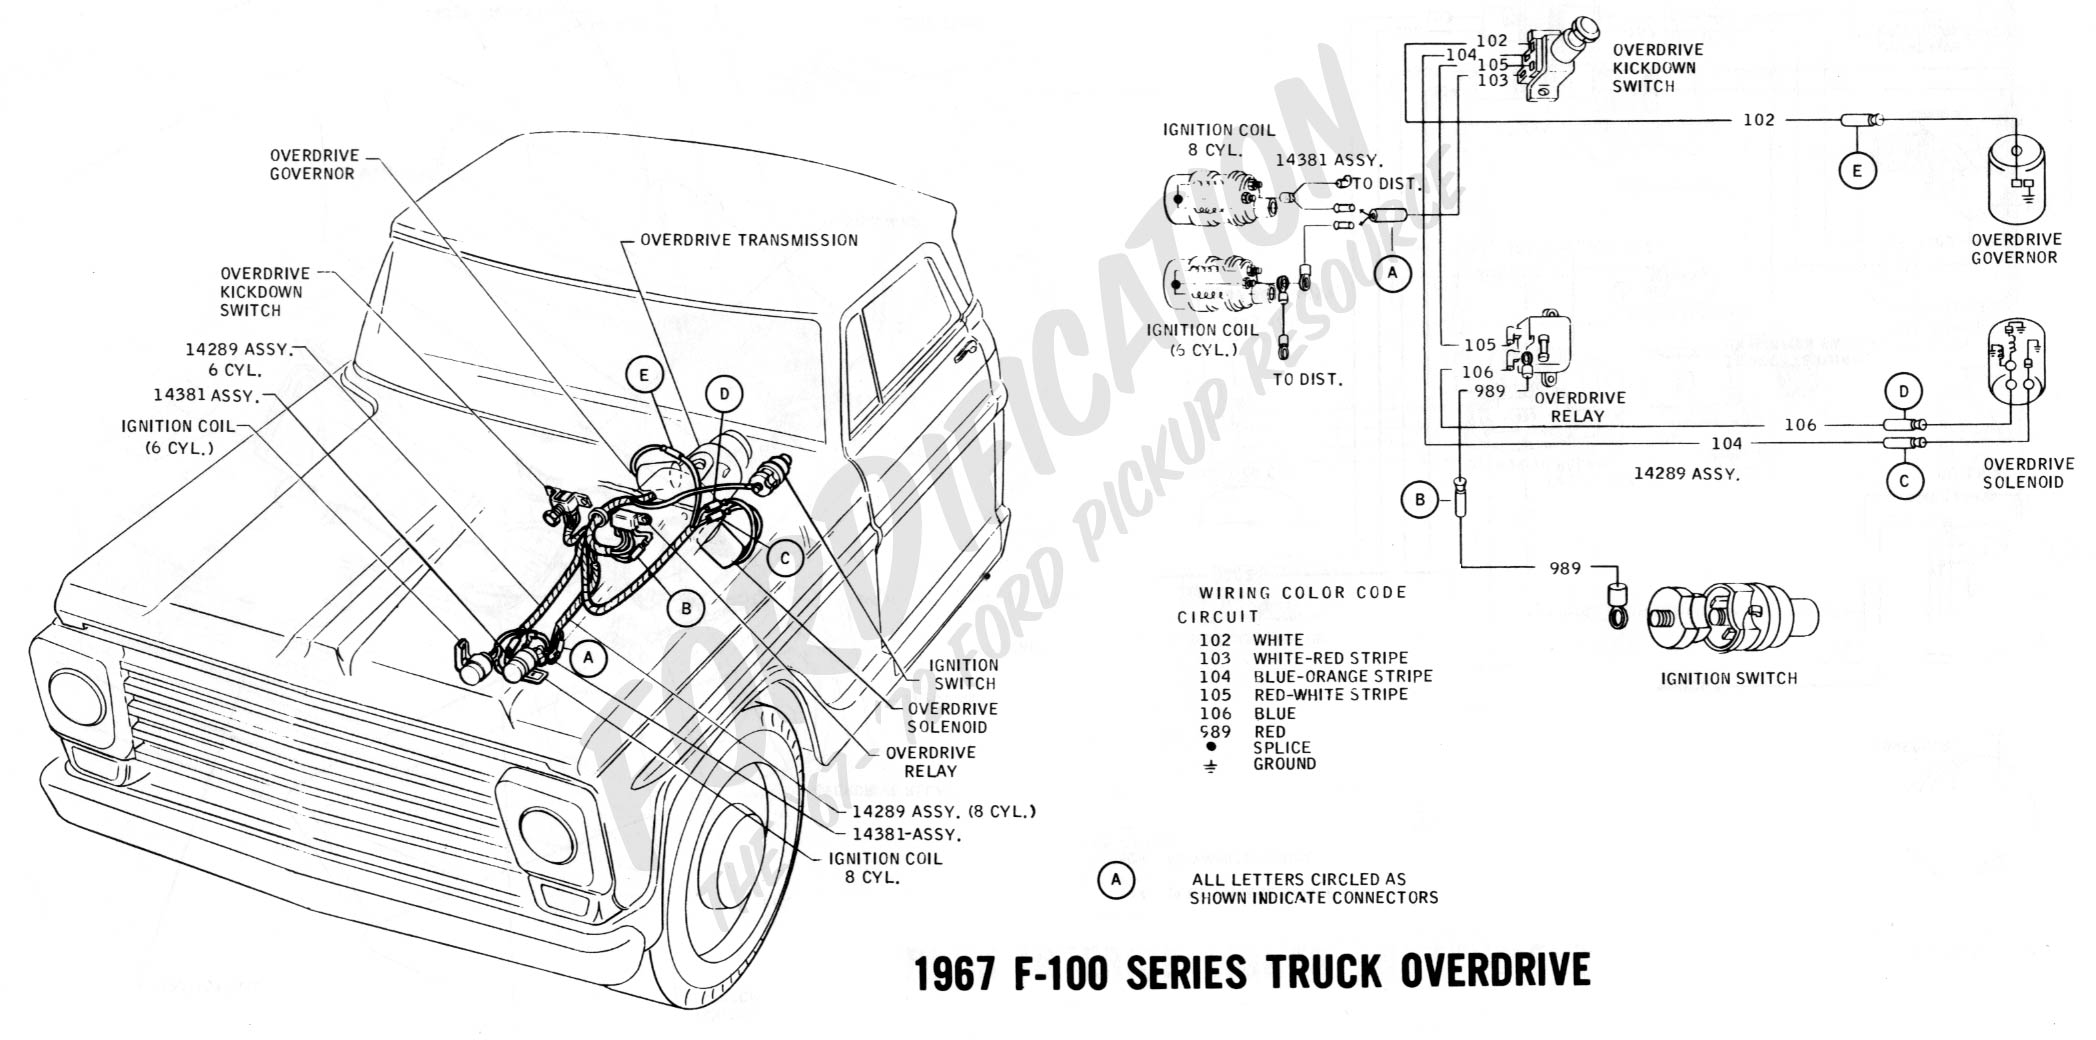 1965 chevy truck fuse block diagram